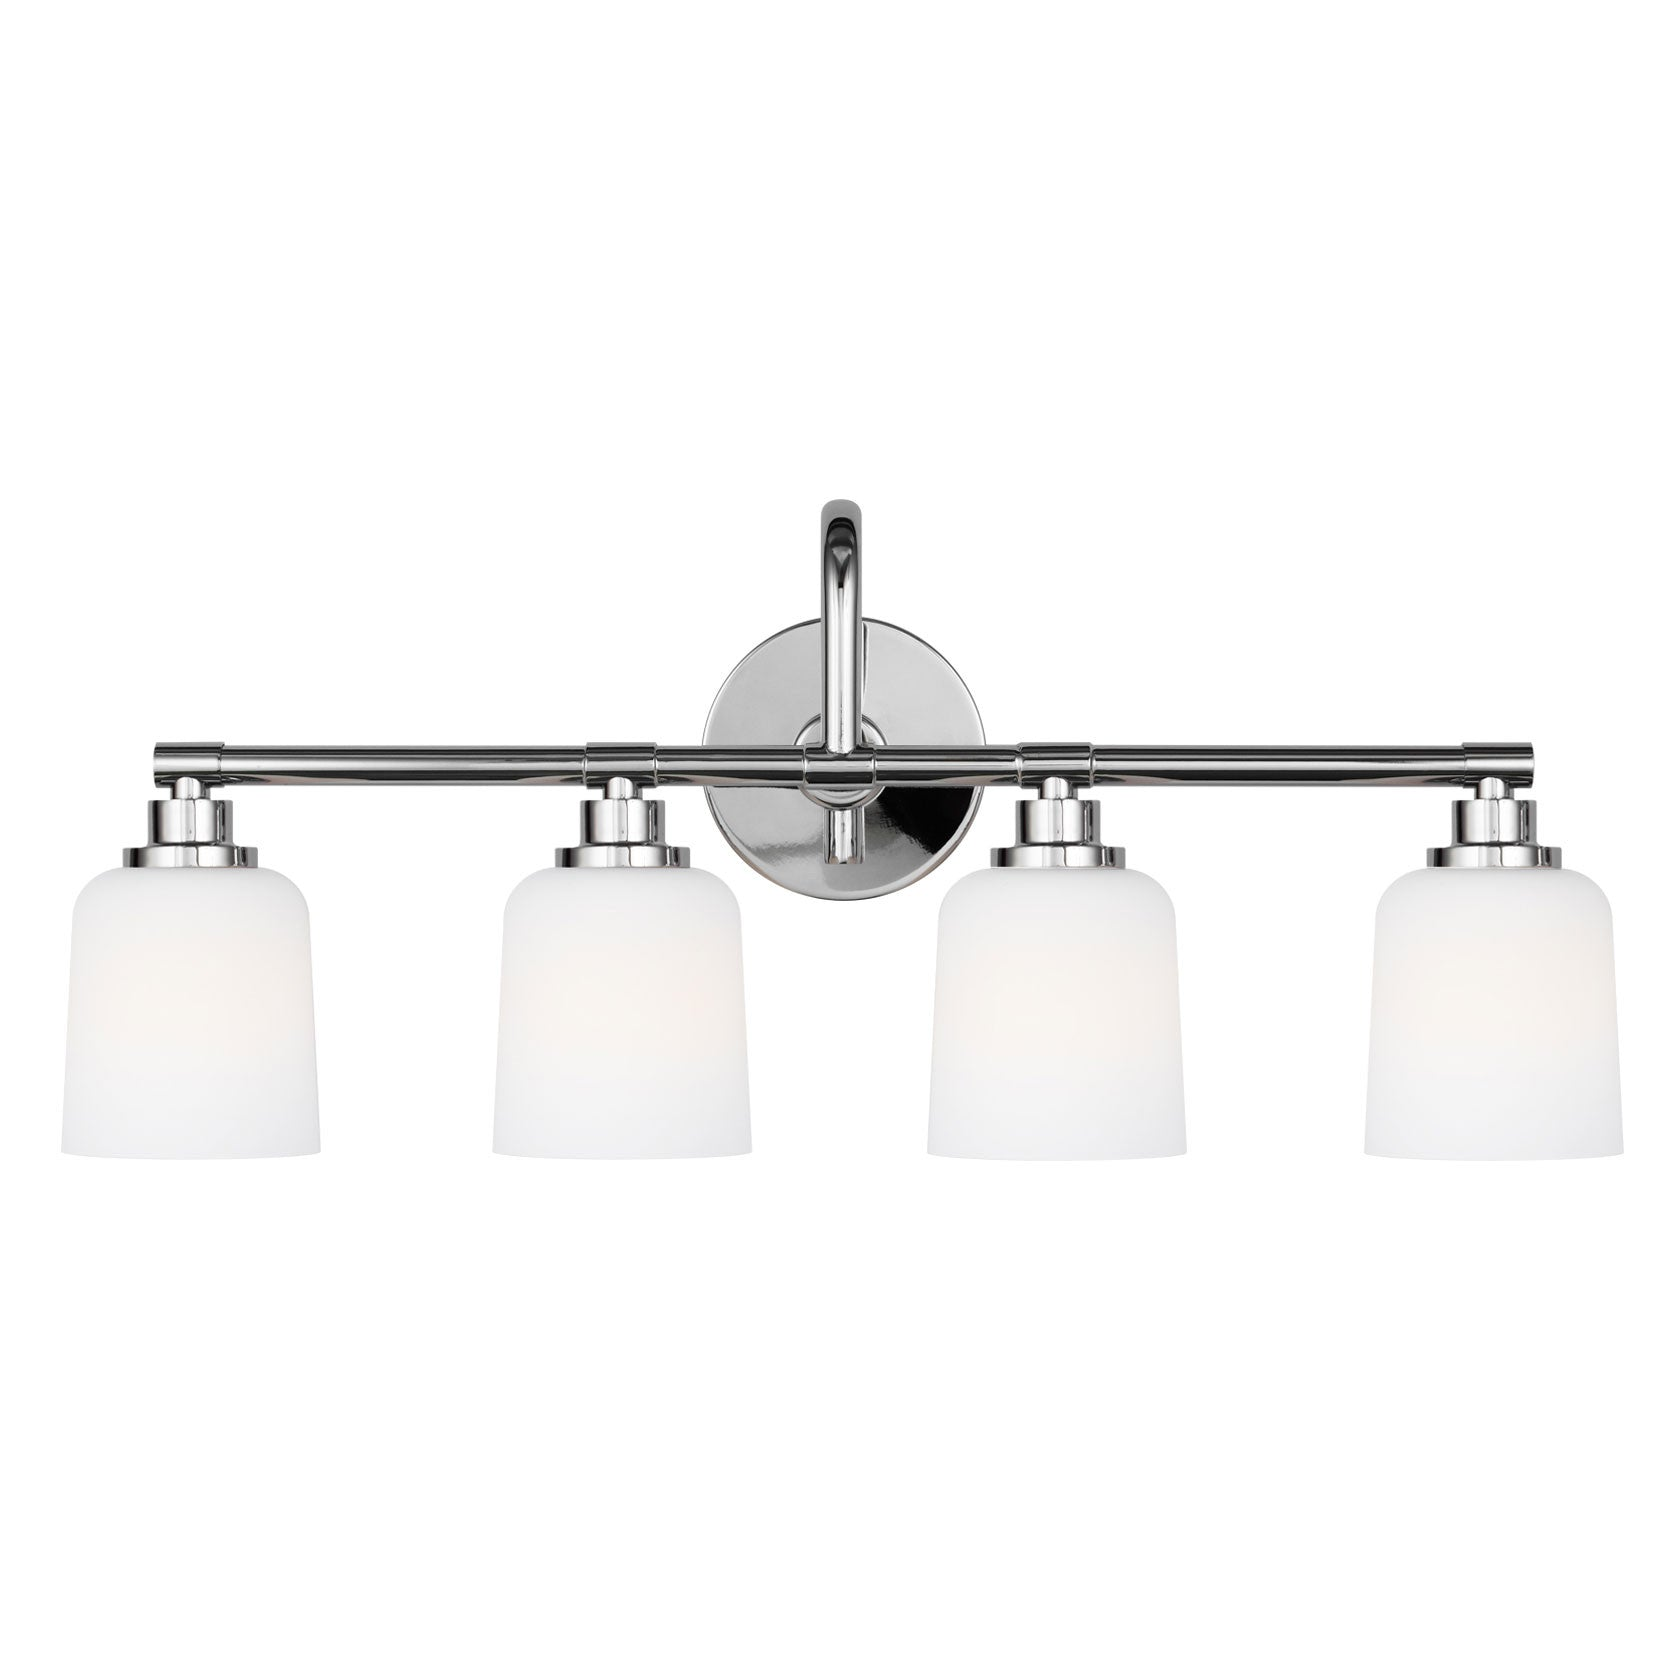 Feiss 4 Light Reiser Vanity Light in Chrome VS23904CH